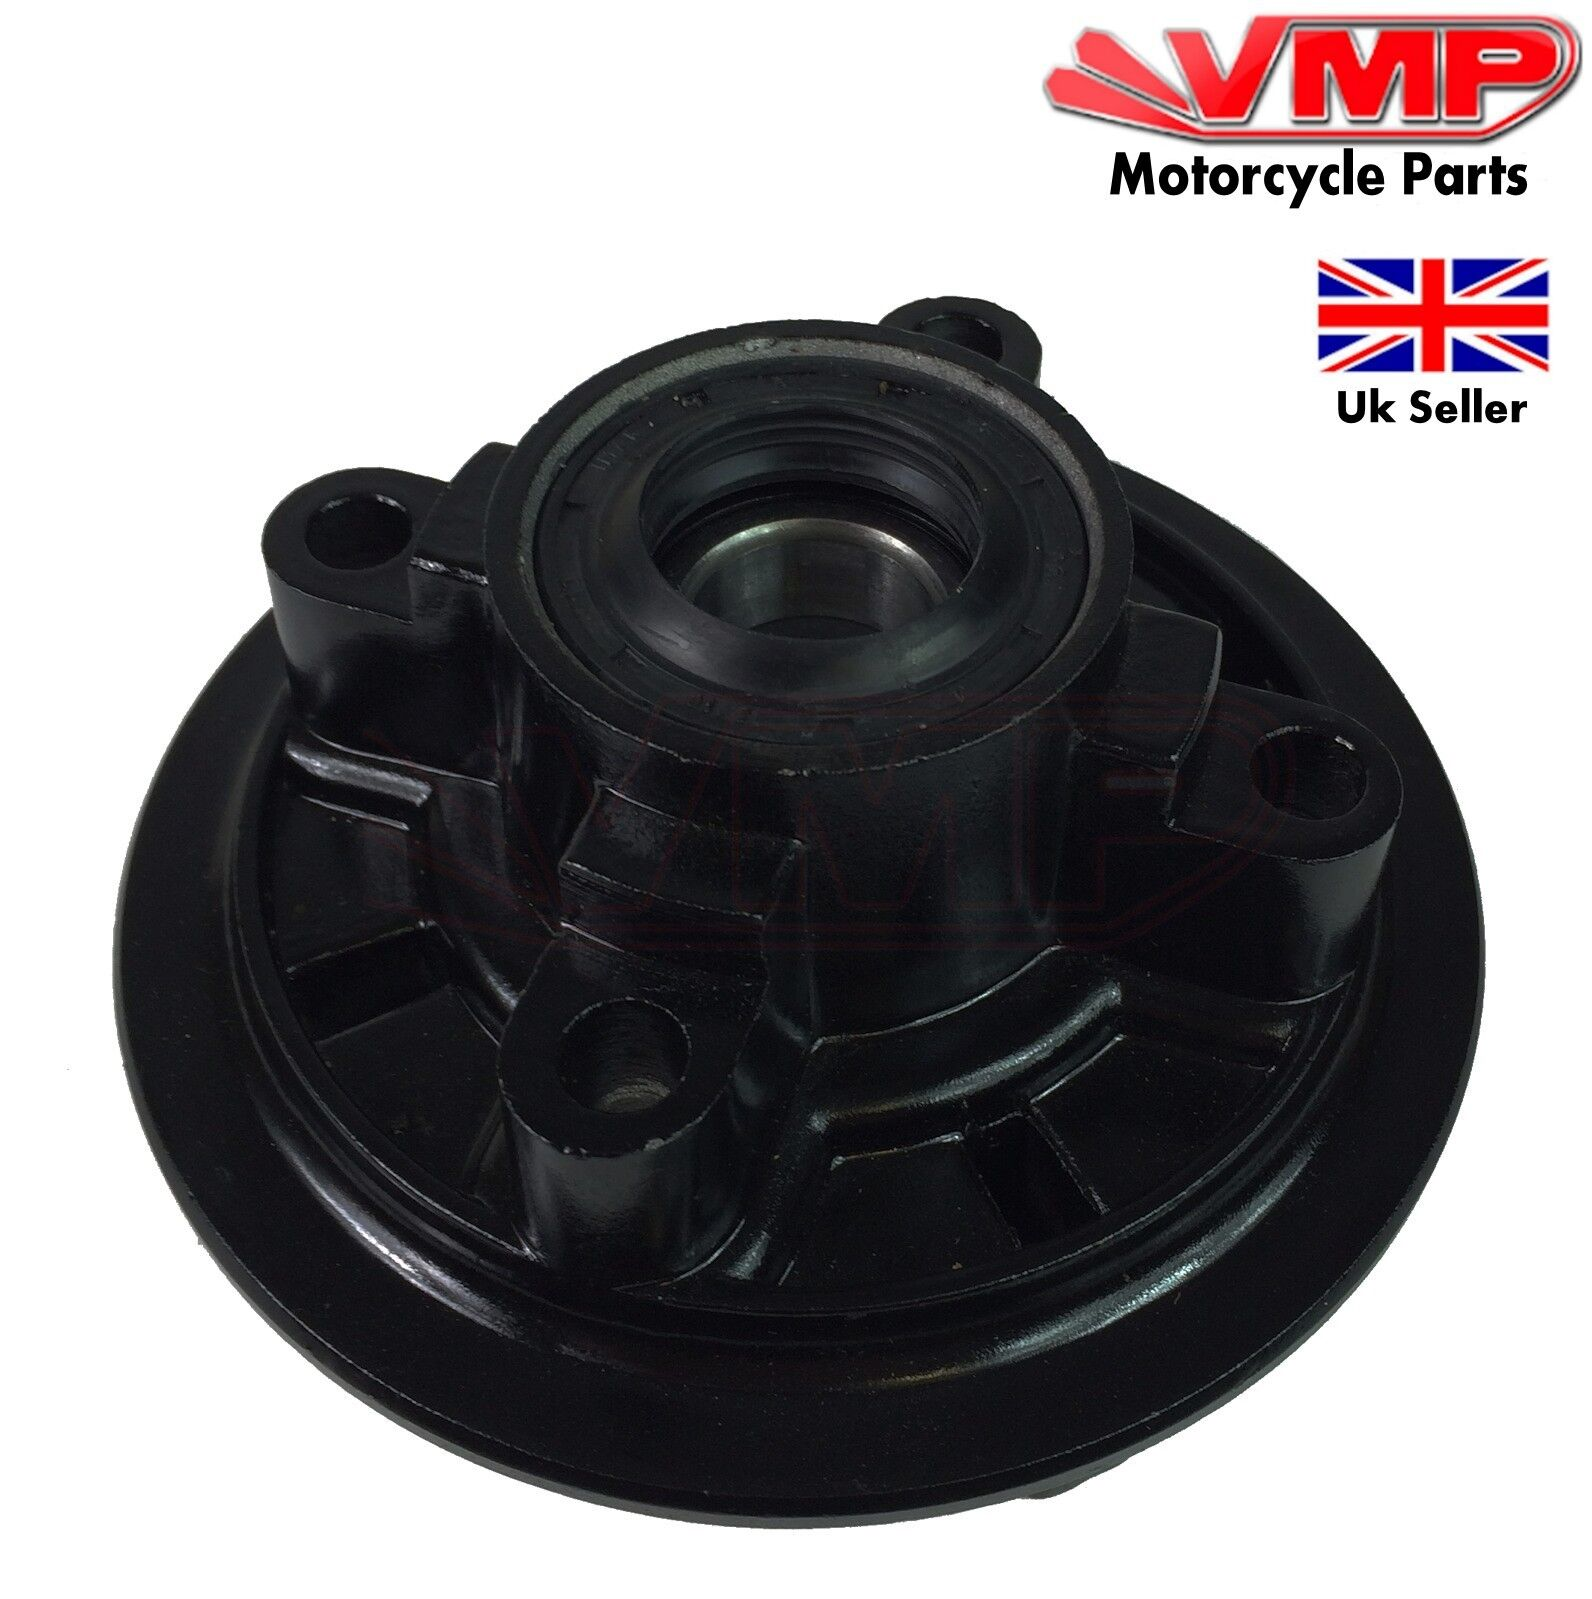 Cush drive rubbers sprocket rubbers set of 4 suitable for Yamaha YBR 125 2007